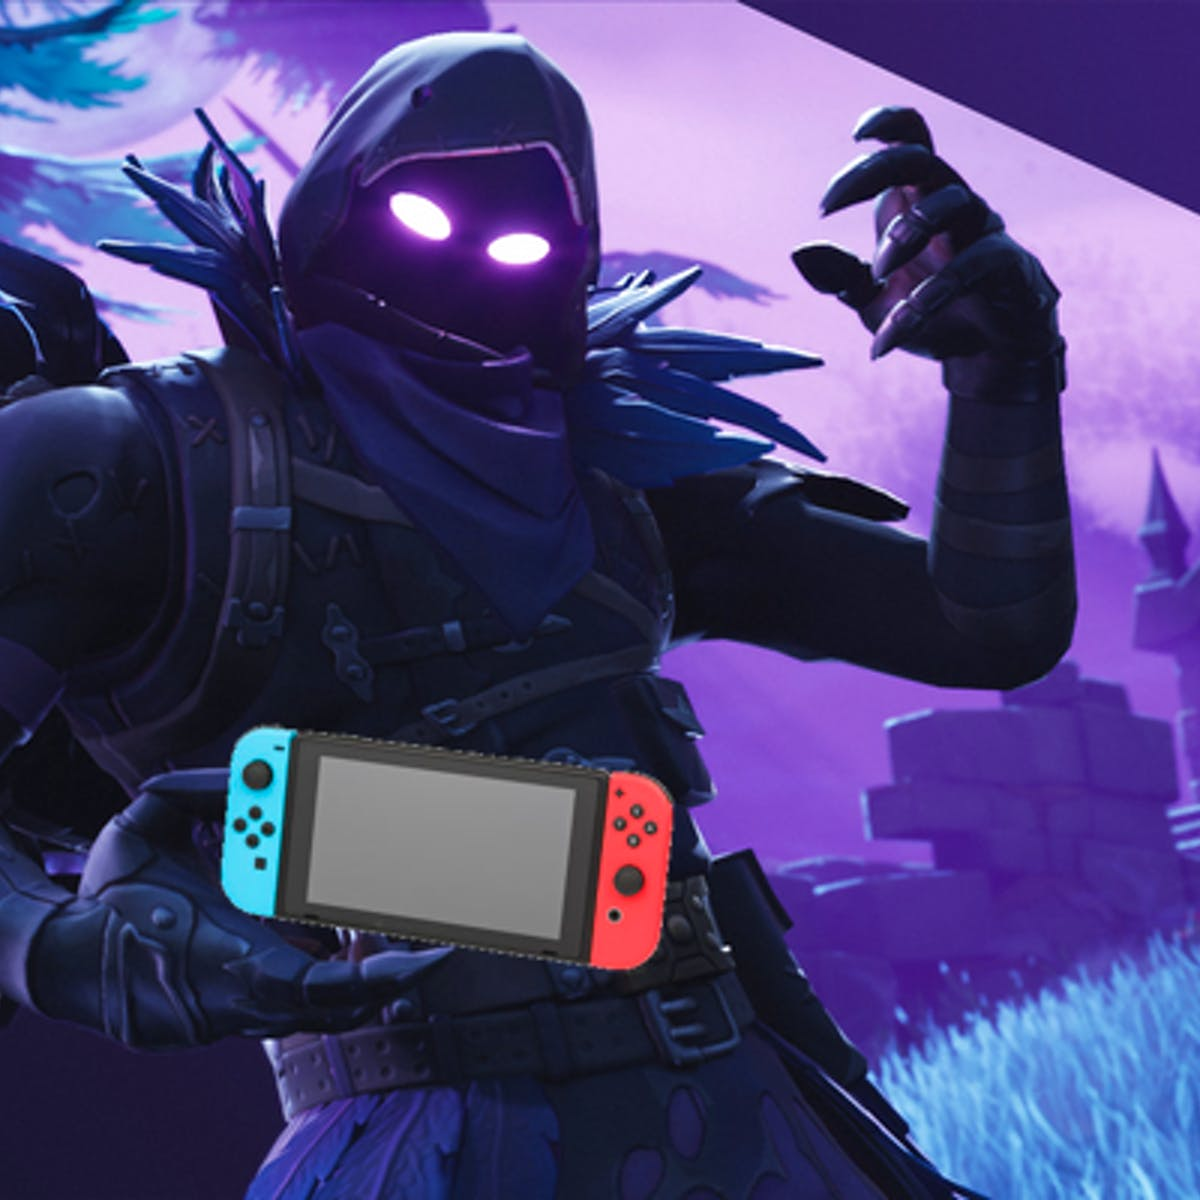 fortnite on nintendo switch will get built in voice chat thank god - how to fix your mic on fortnite switch